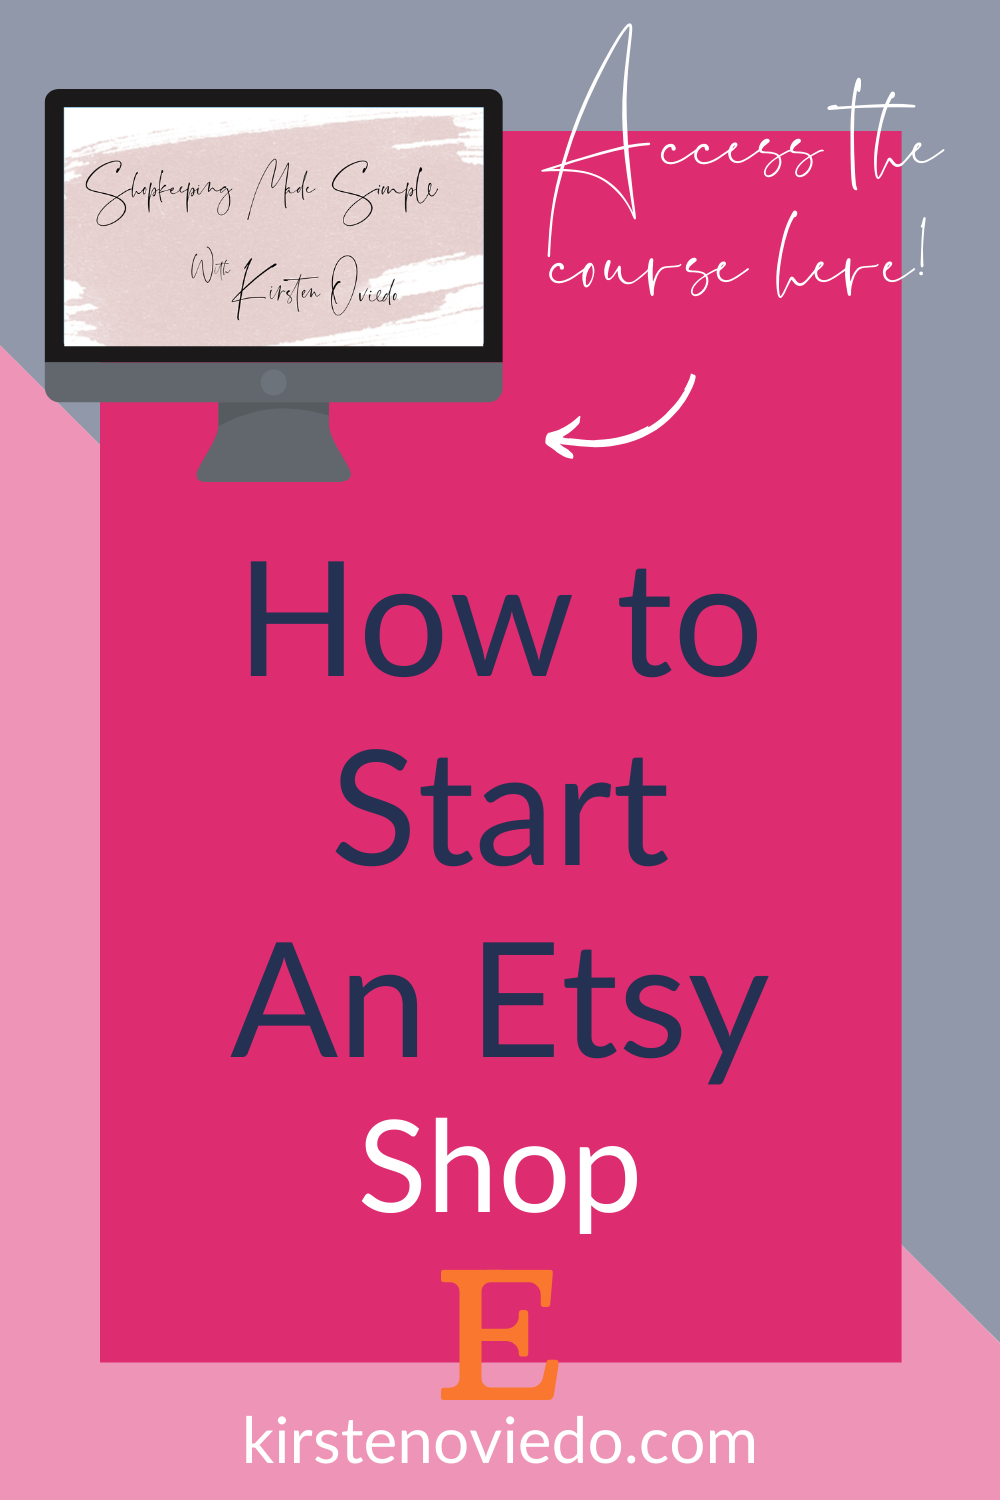 How to start an Etsy Business - Shopkeeping made simple1